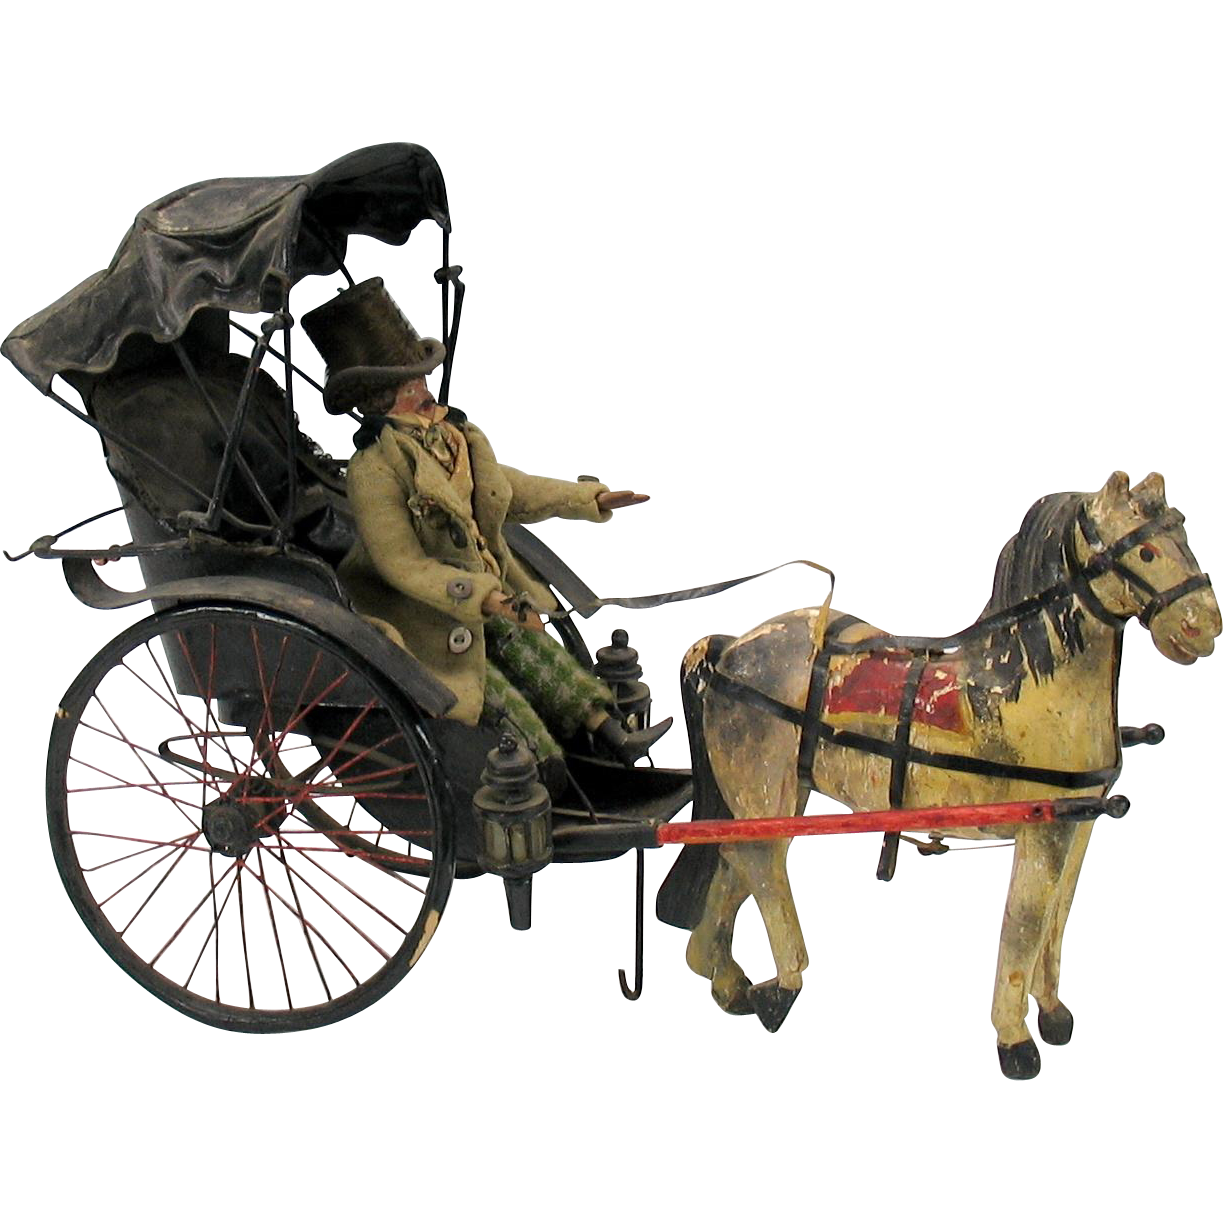 early man doll in beaver top hat riding in horse drawn